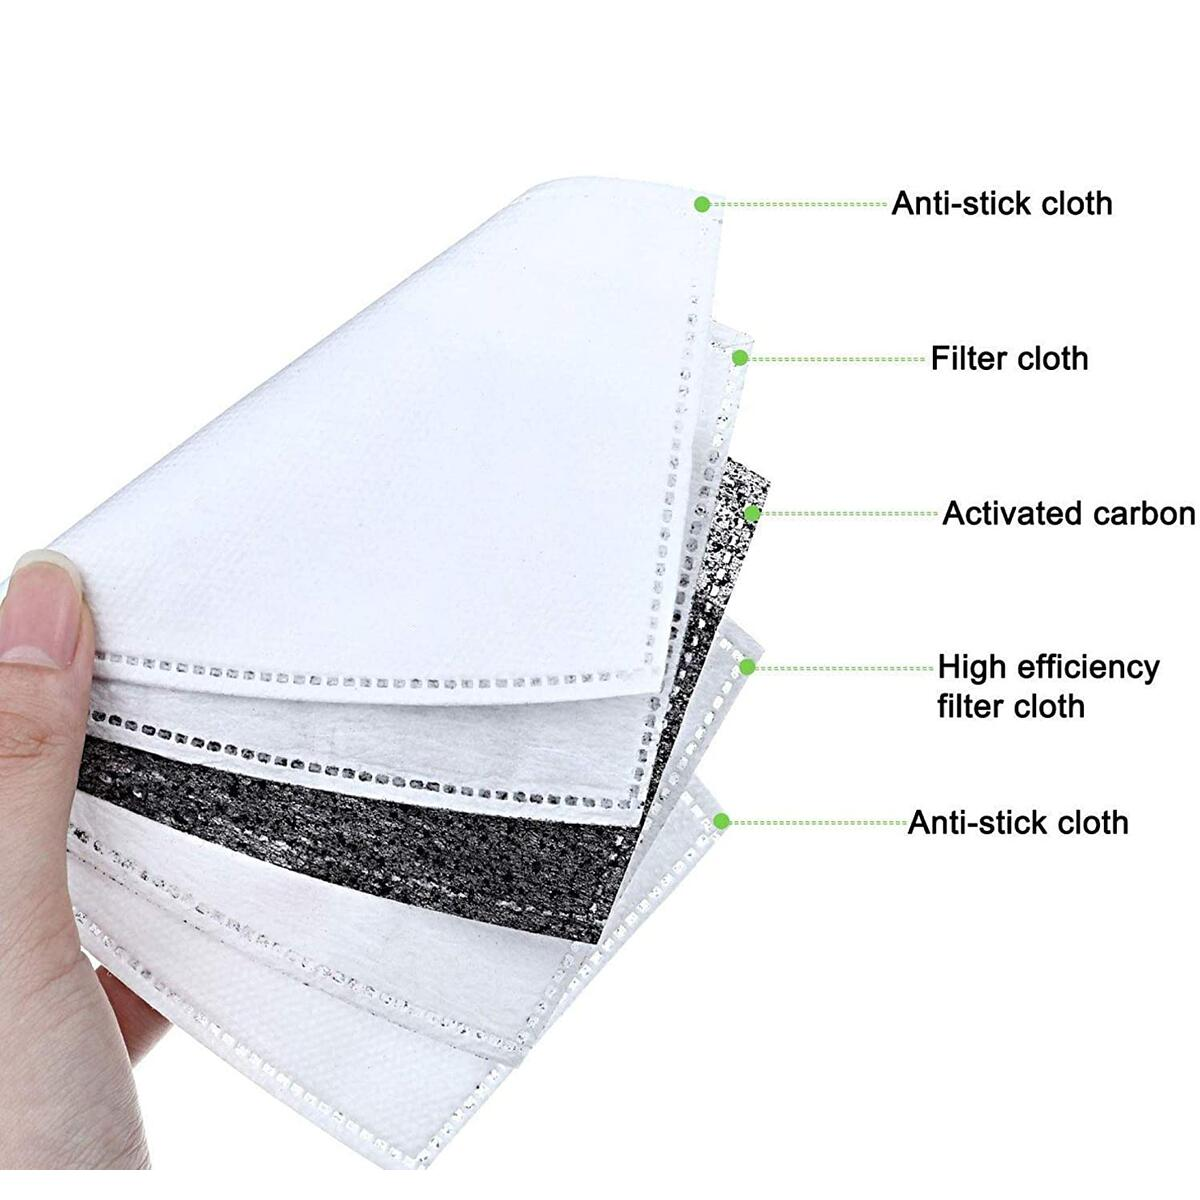 Happy Home PM2.5 Replaceable Filters with 5 Activated Carbon Layers for Face Mask with Filter Slot - Provides Protection from Harmful Pollutants, 20pc Carbon Filters